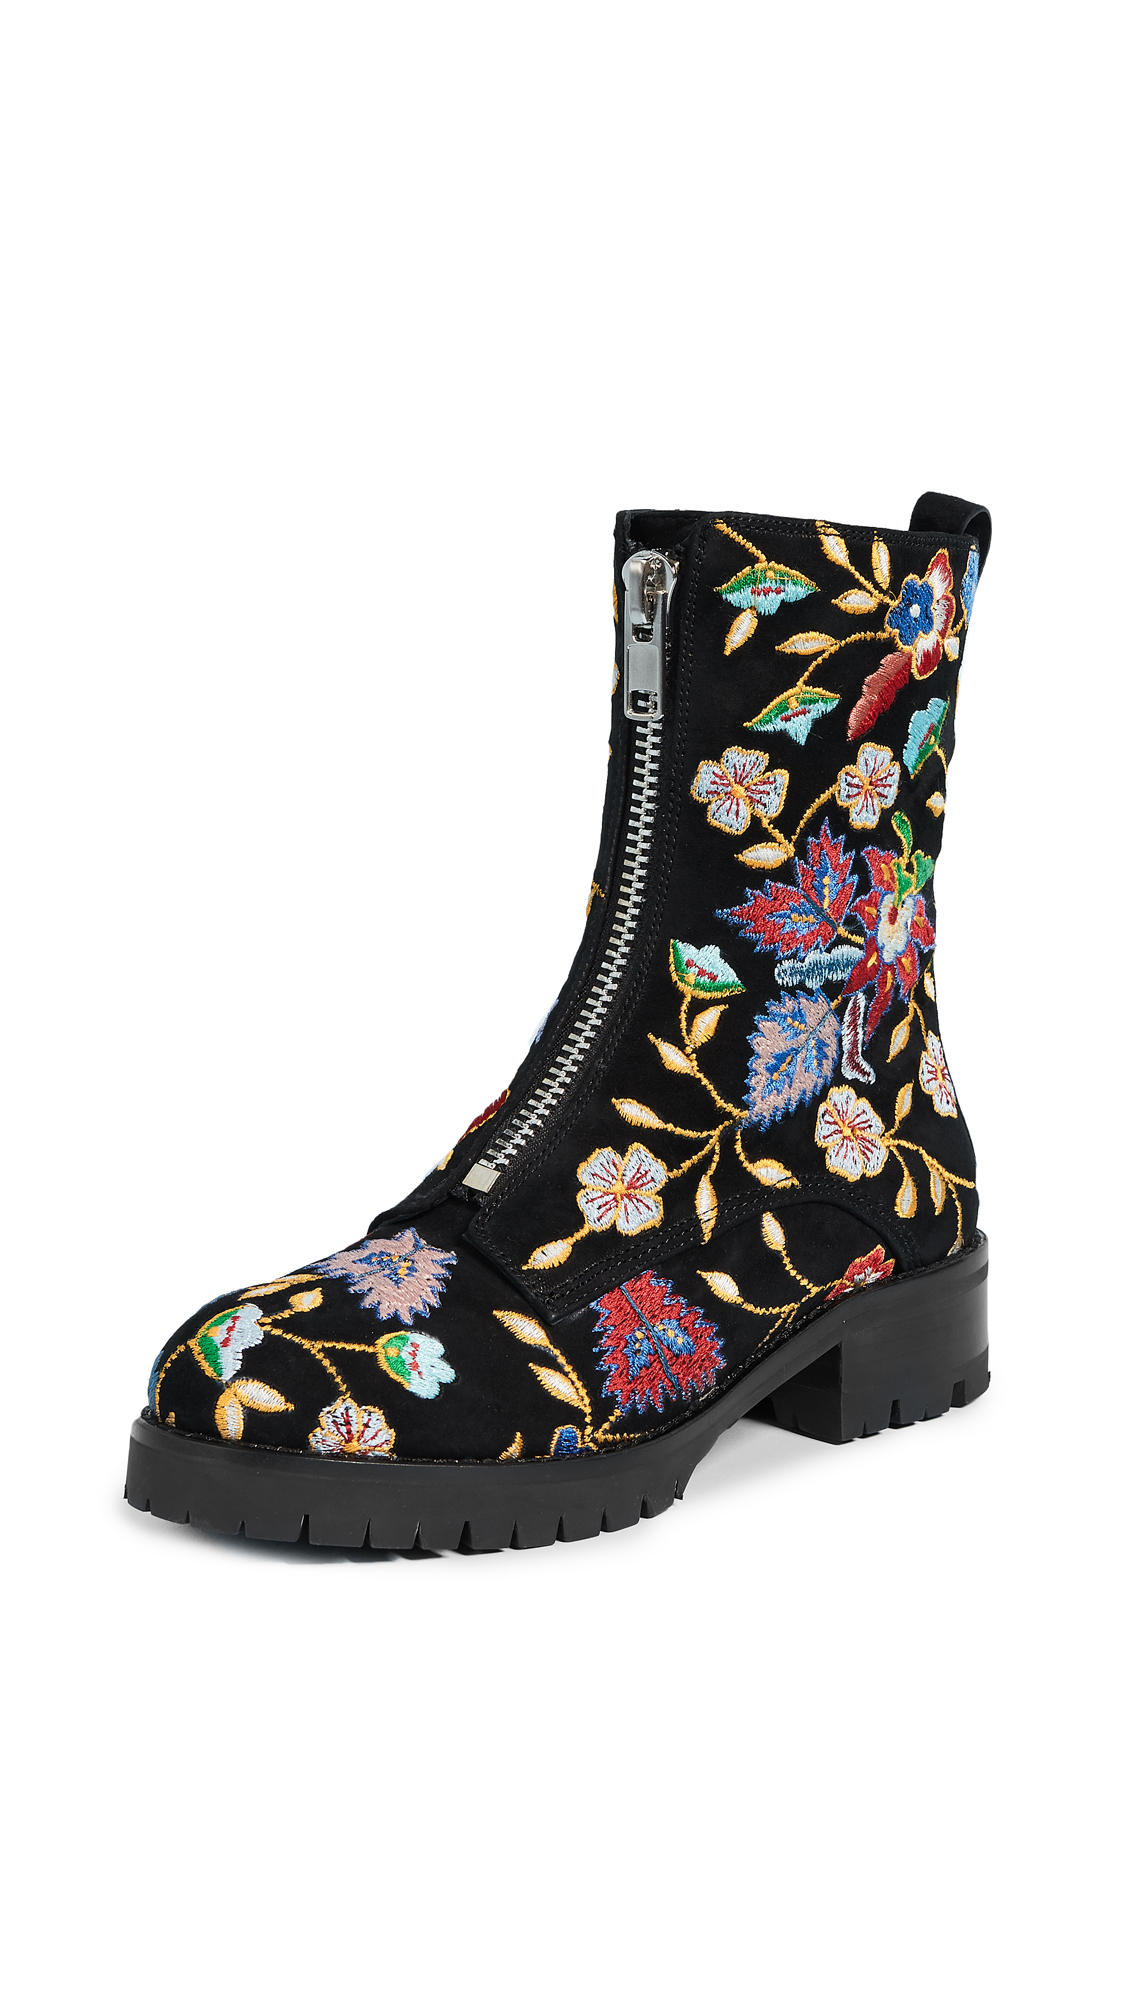 alice + olivia Dustin Zip Boots - Multi/Black